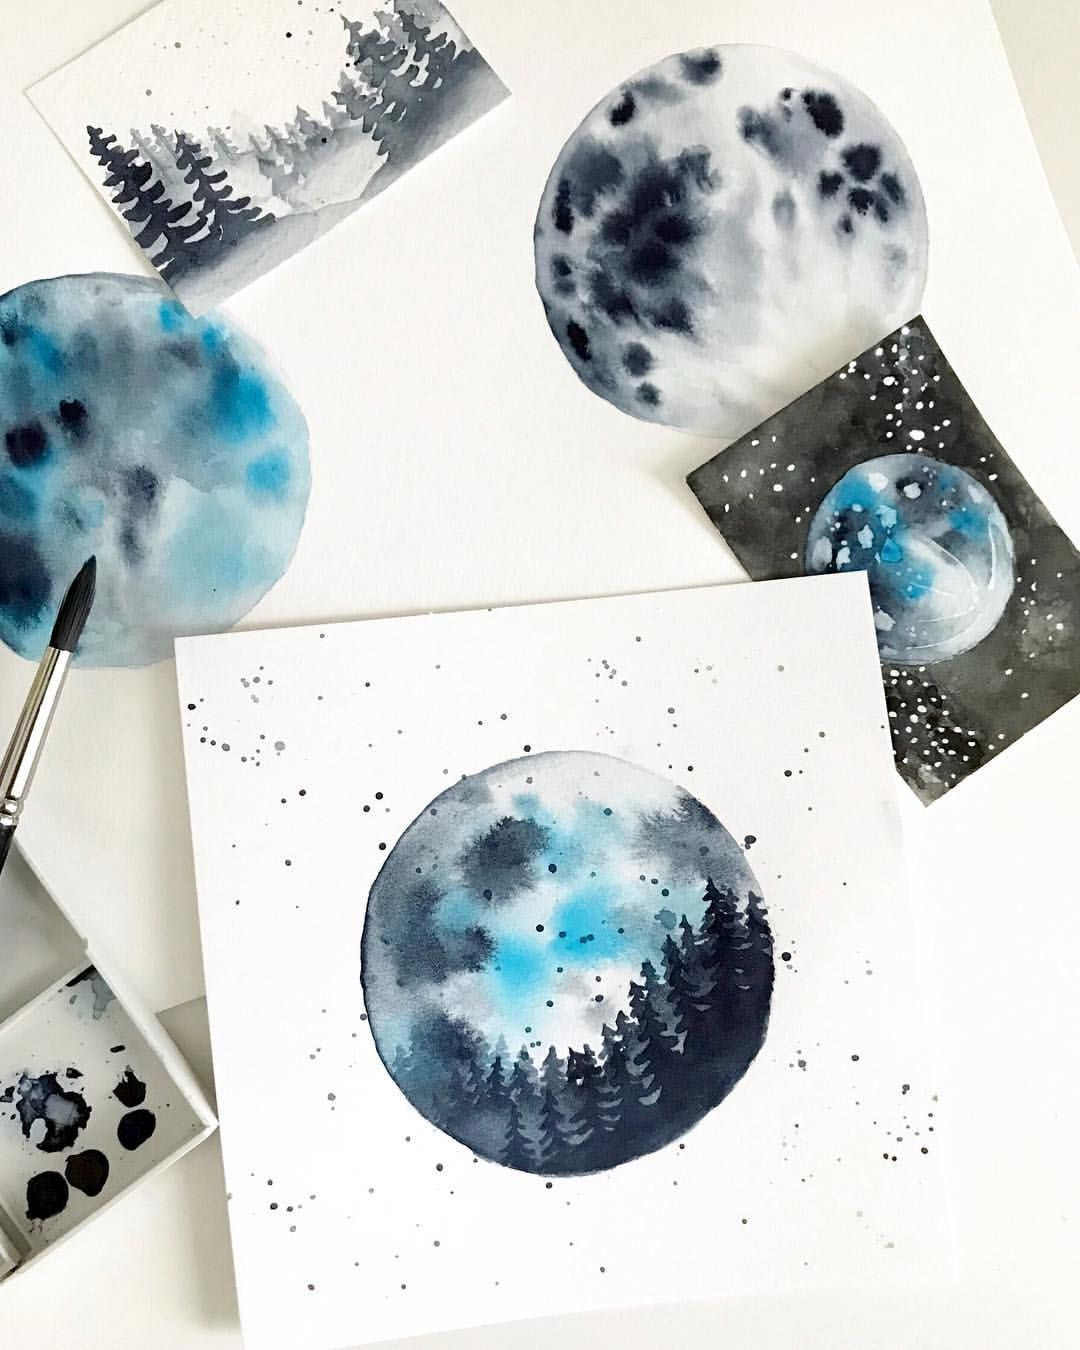 Watercolor Moon Experiments And Practice By Deanna Jensen Of